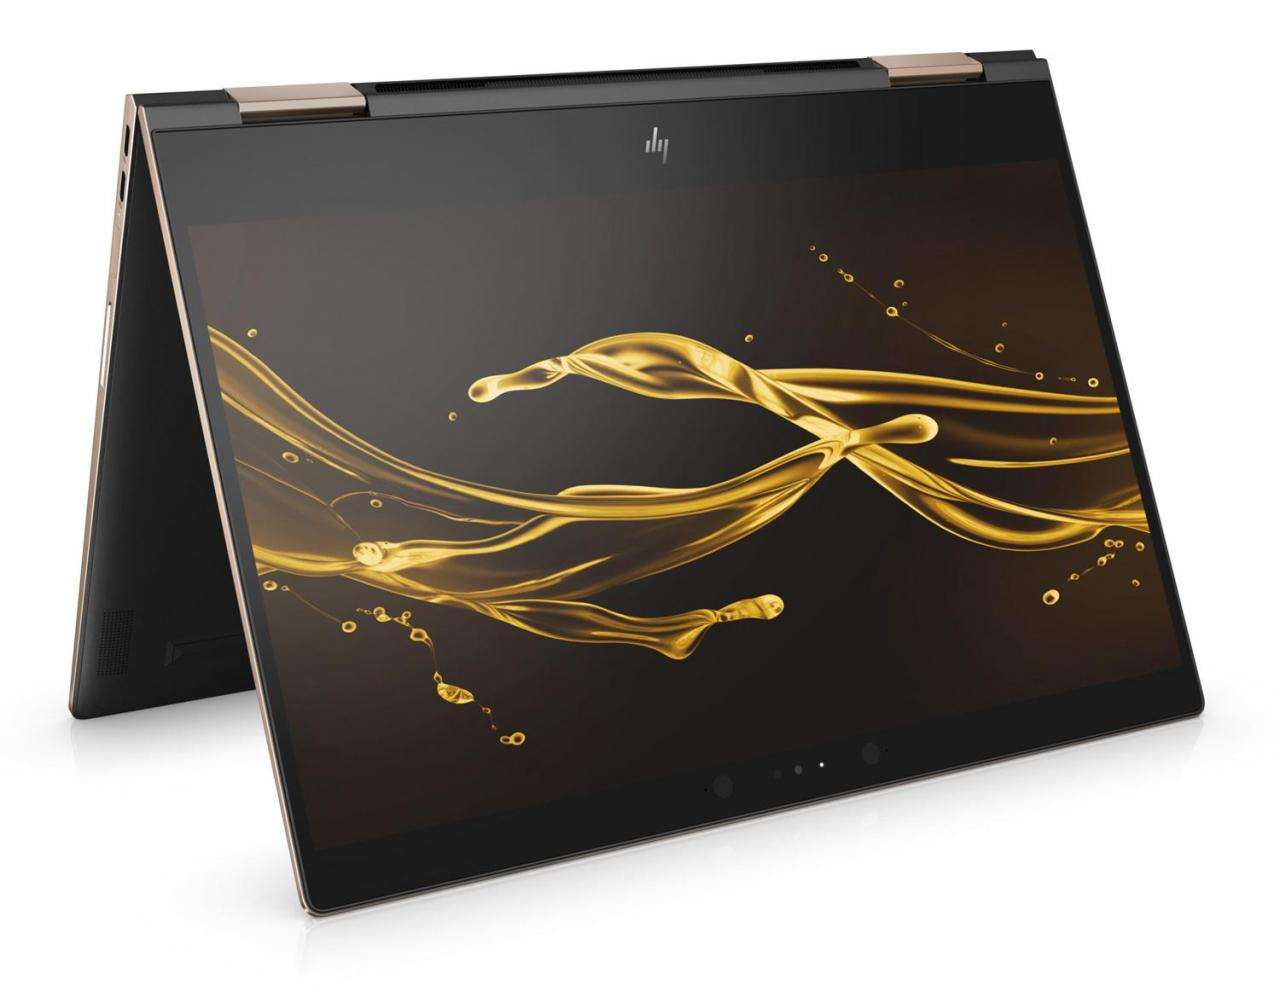 HP Specter x360 13-ae020nf Specs and Details